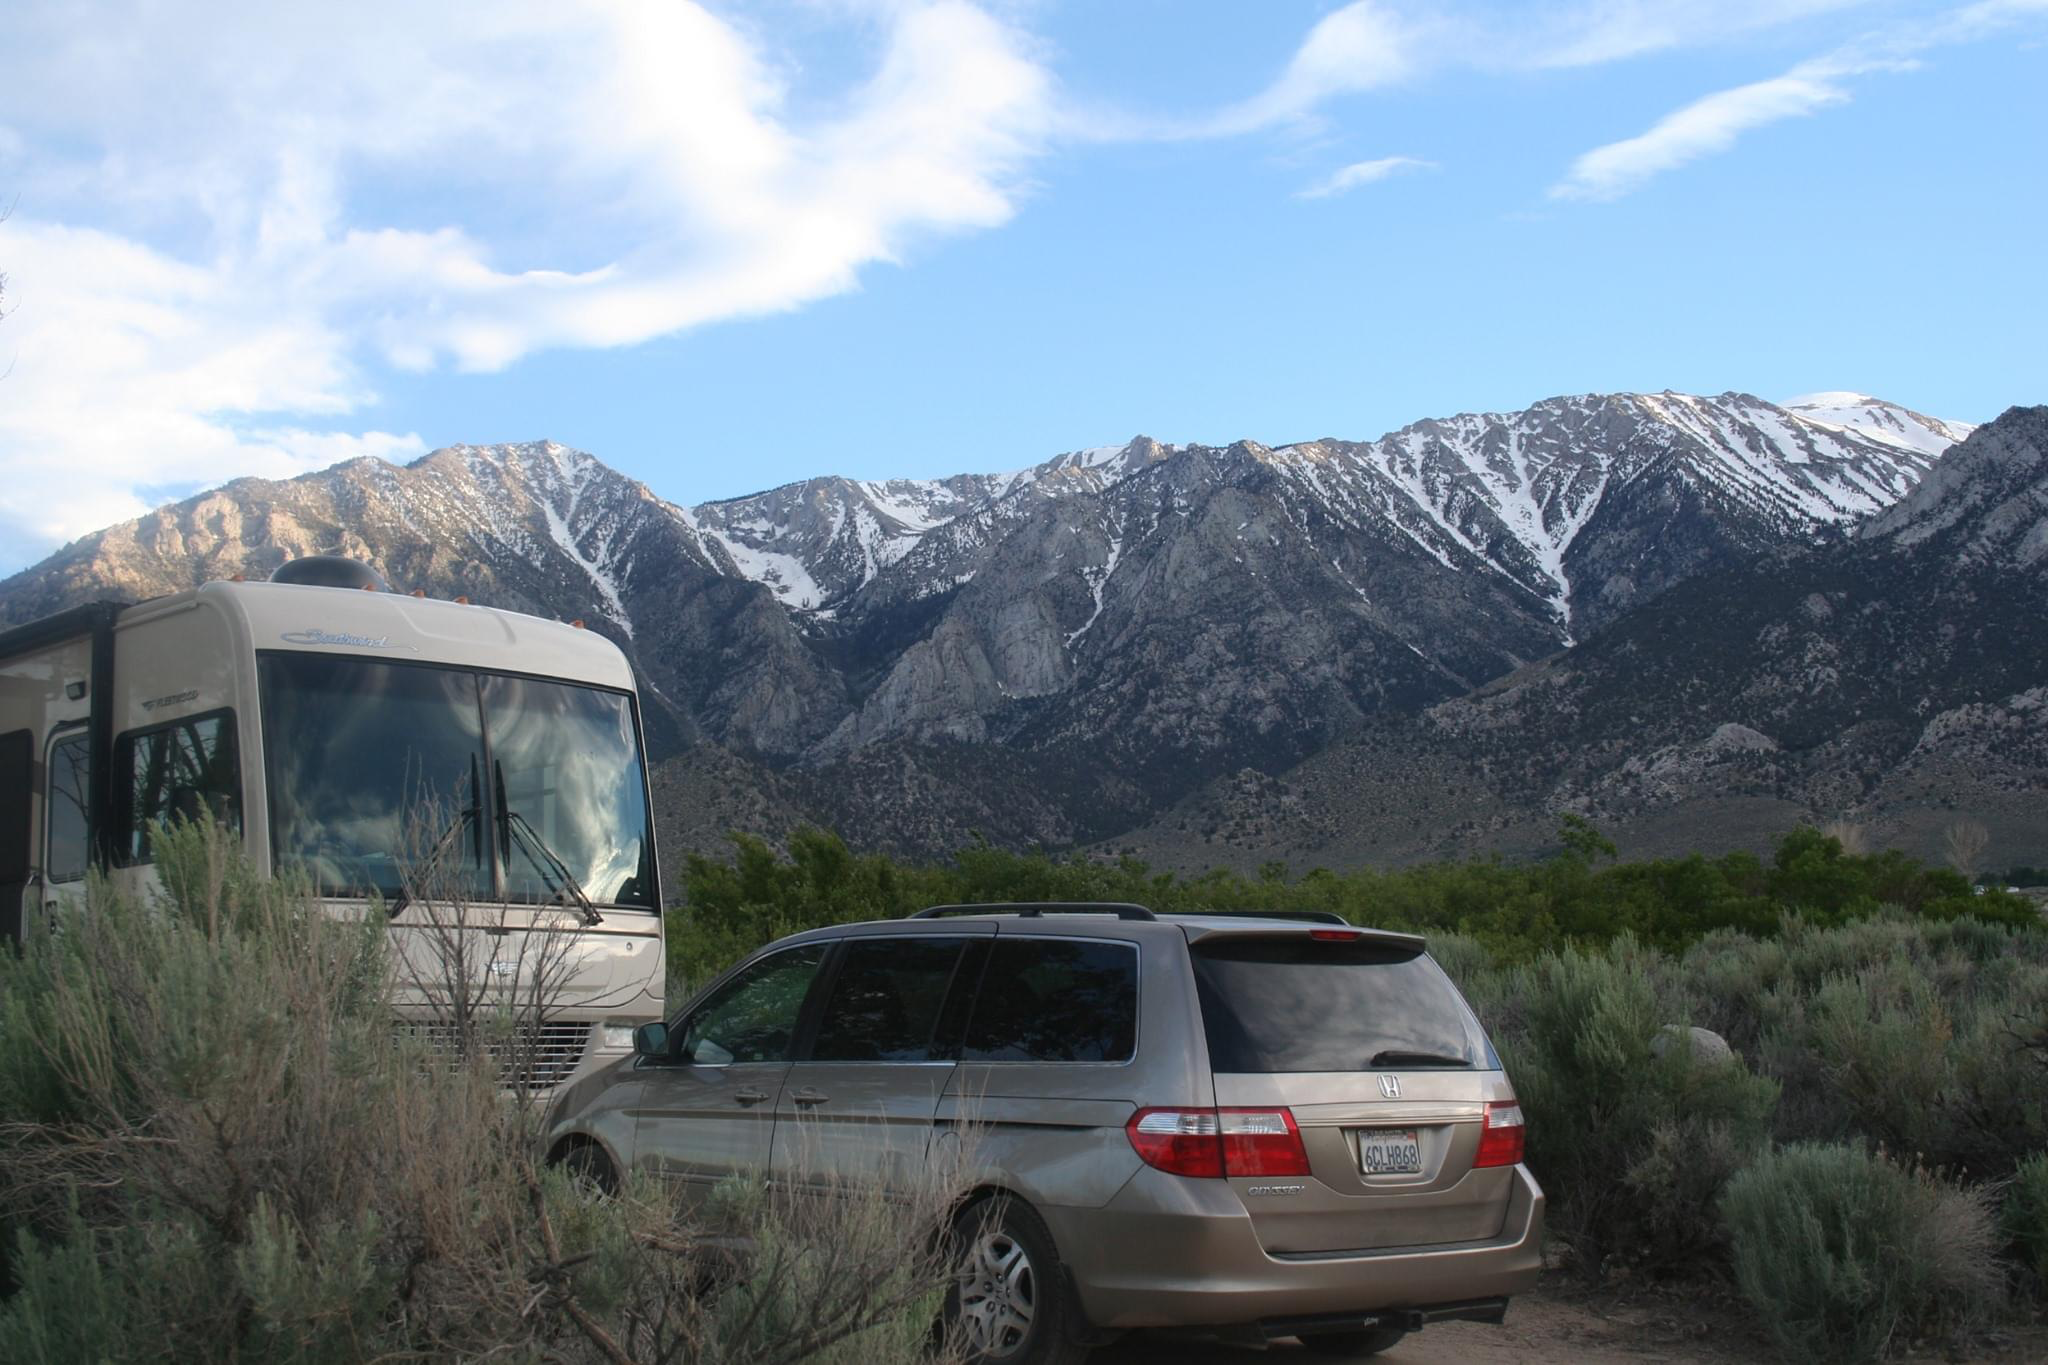 owens valley and mount whitney views in California's Sierra Nevadas